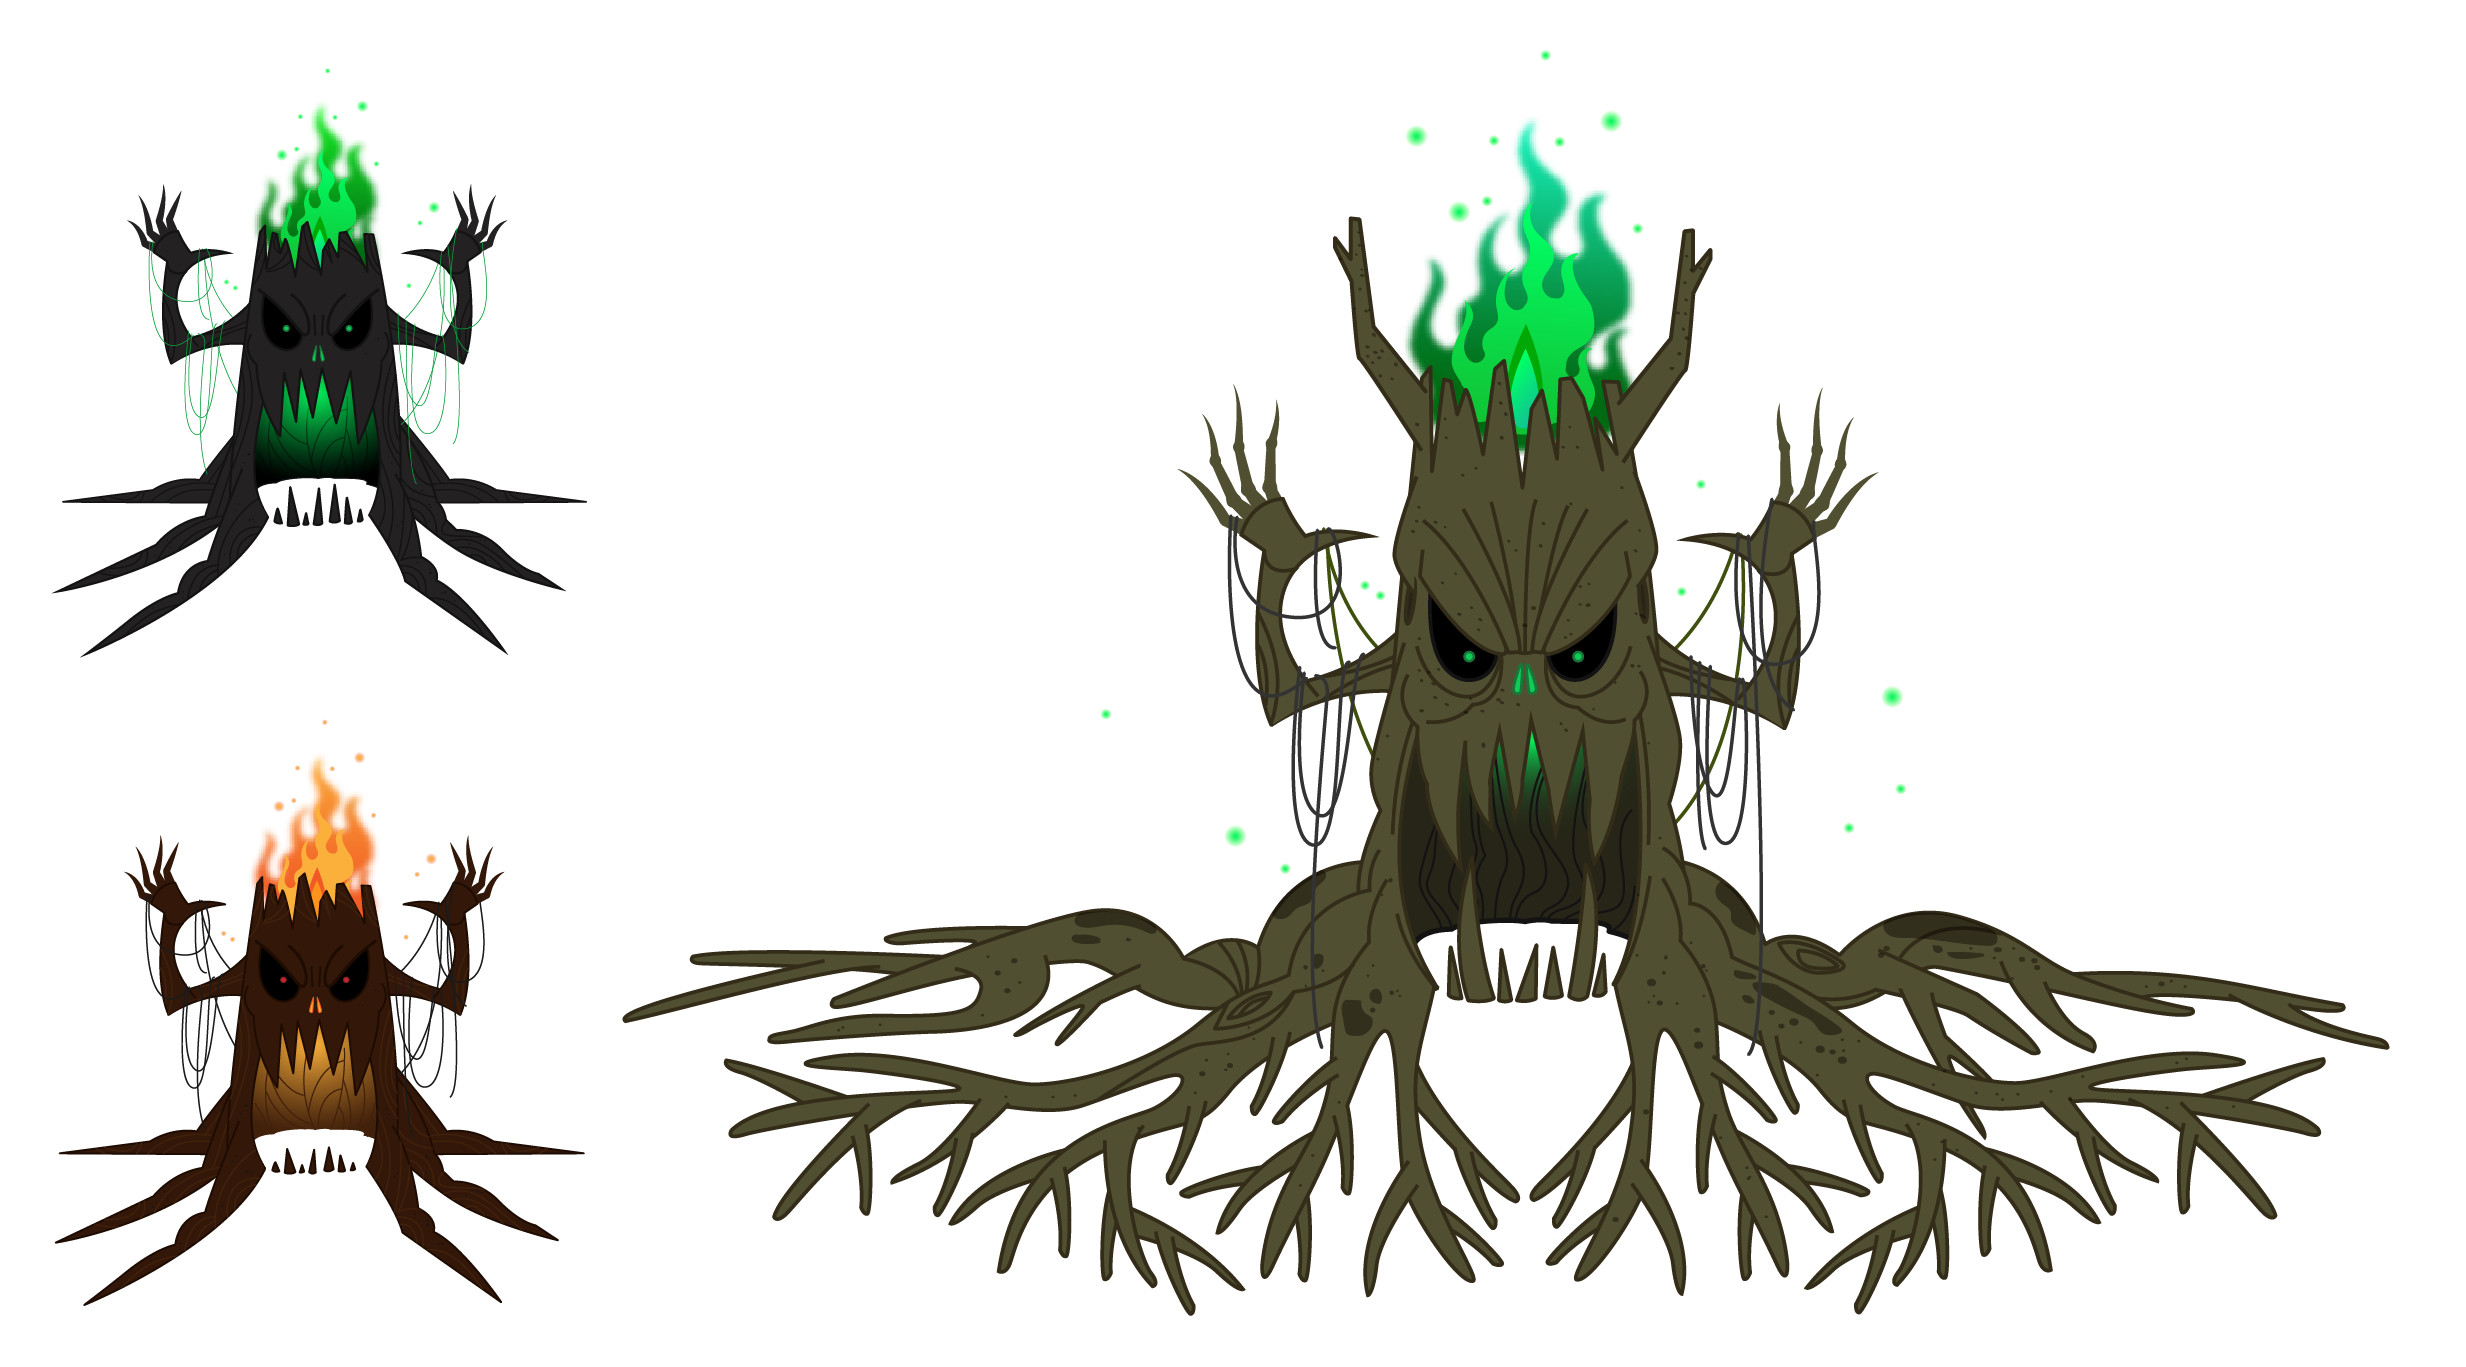 The  tree monster